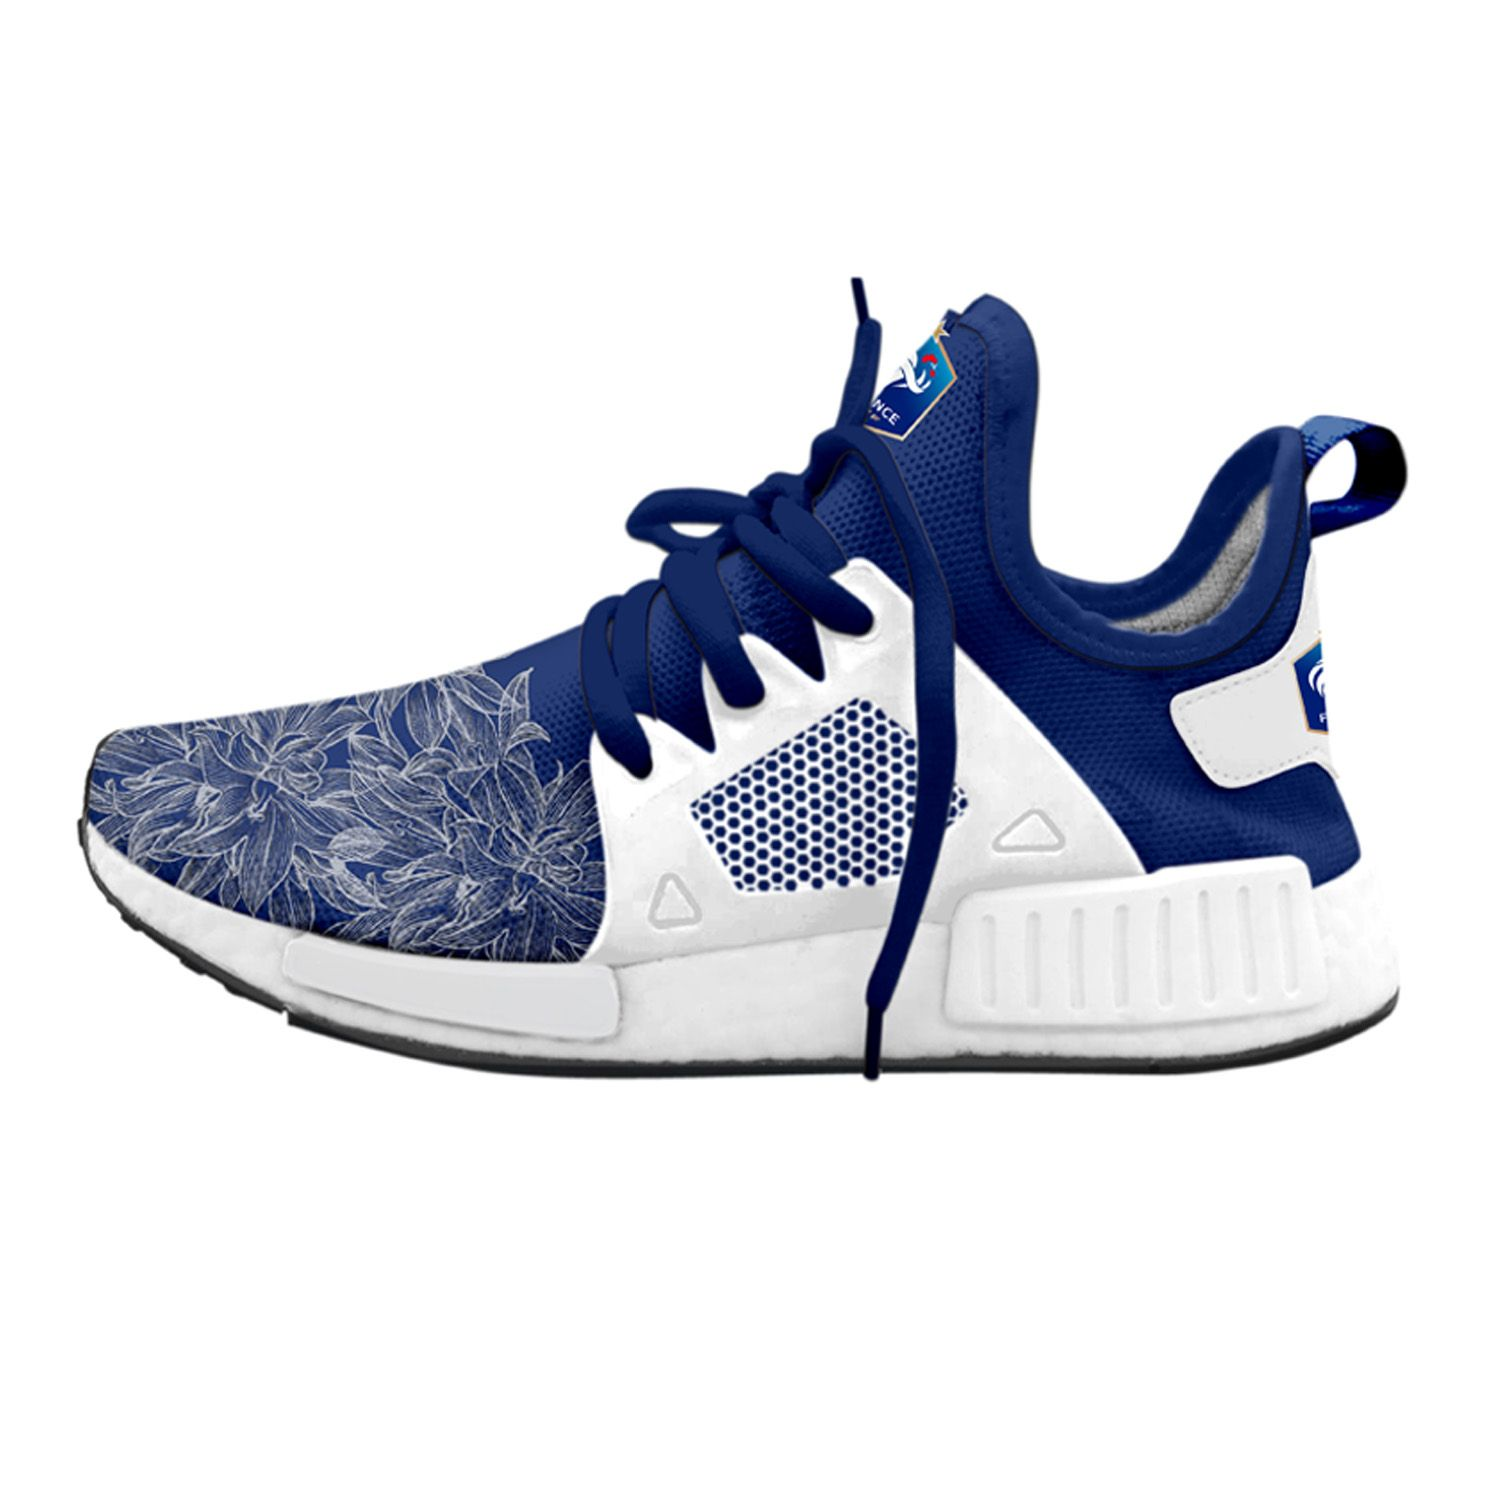 World Cup NMD Casual ShoesFrance Casual shoes, Shoes